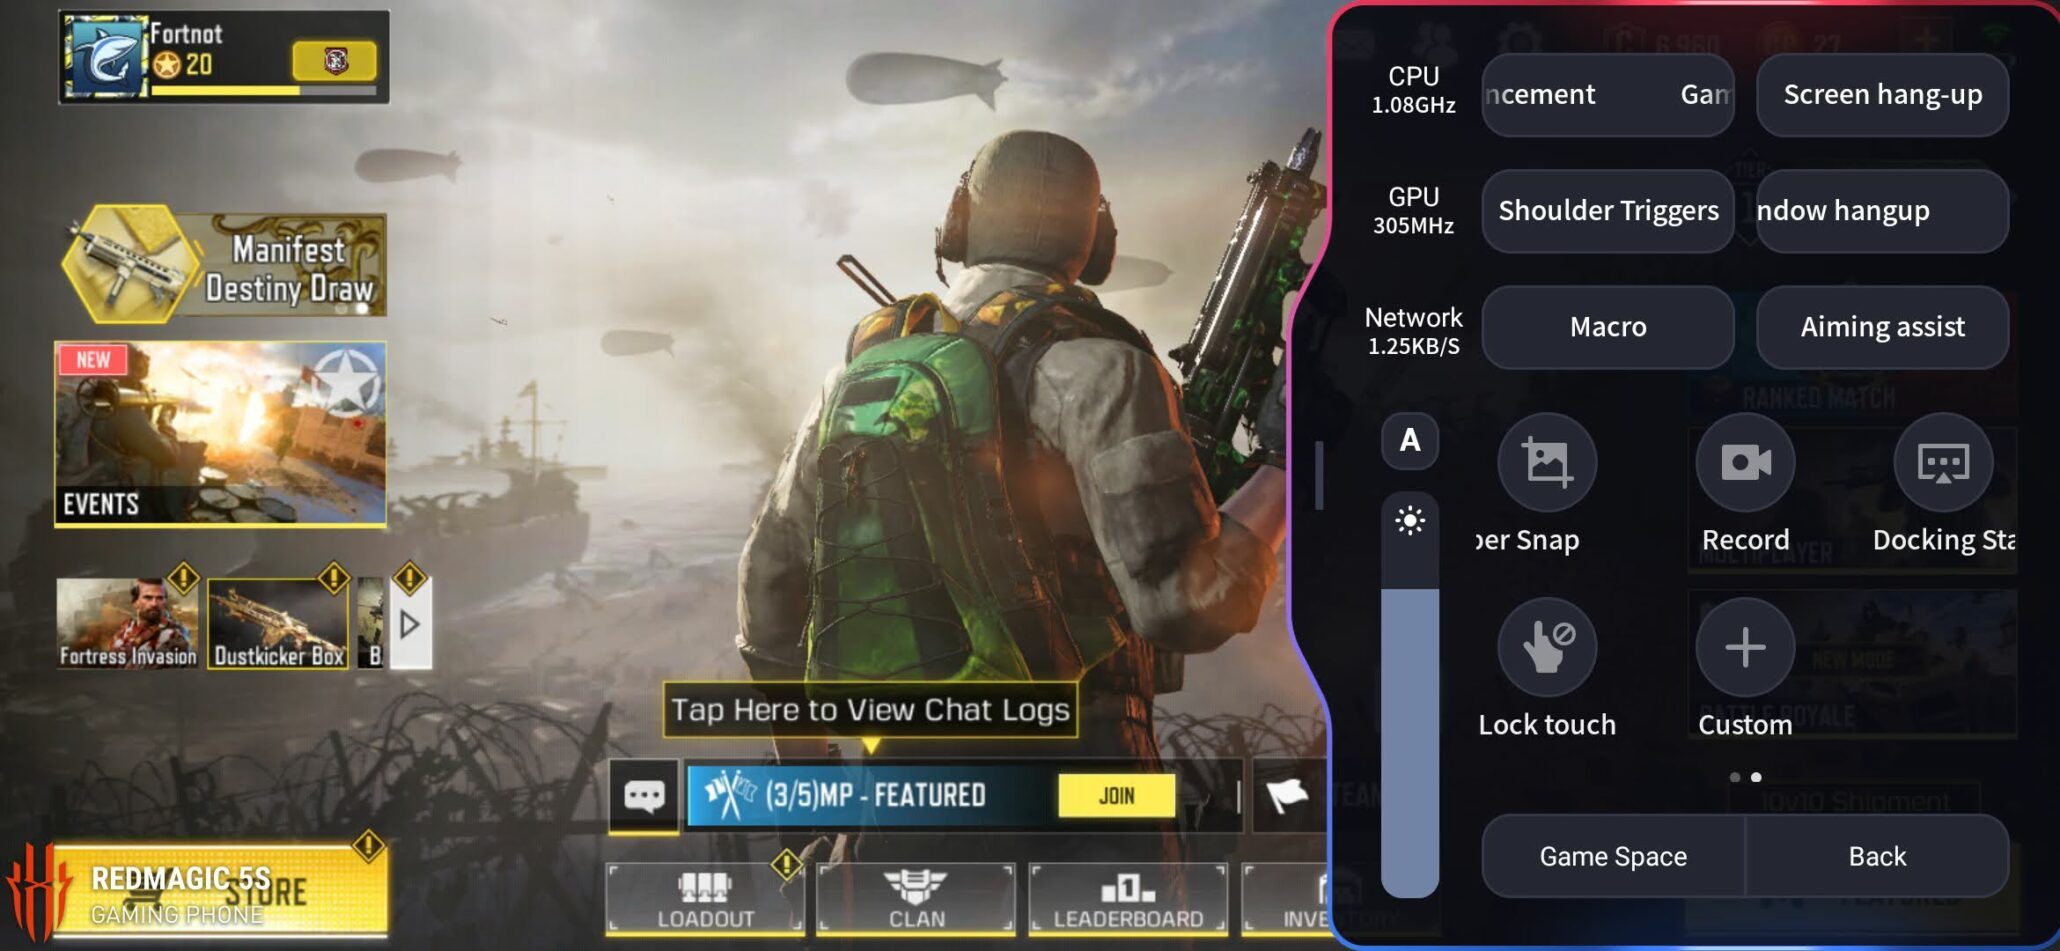 Red Magic 5S Call of Duty Mobile 1